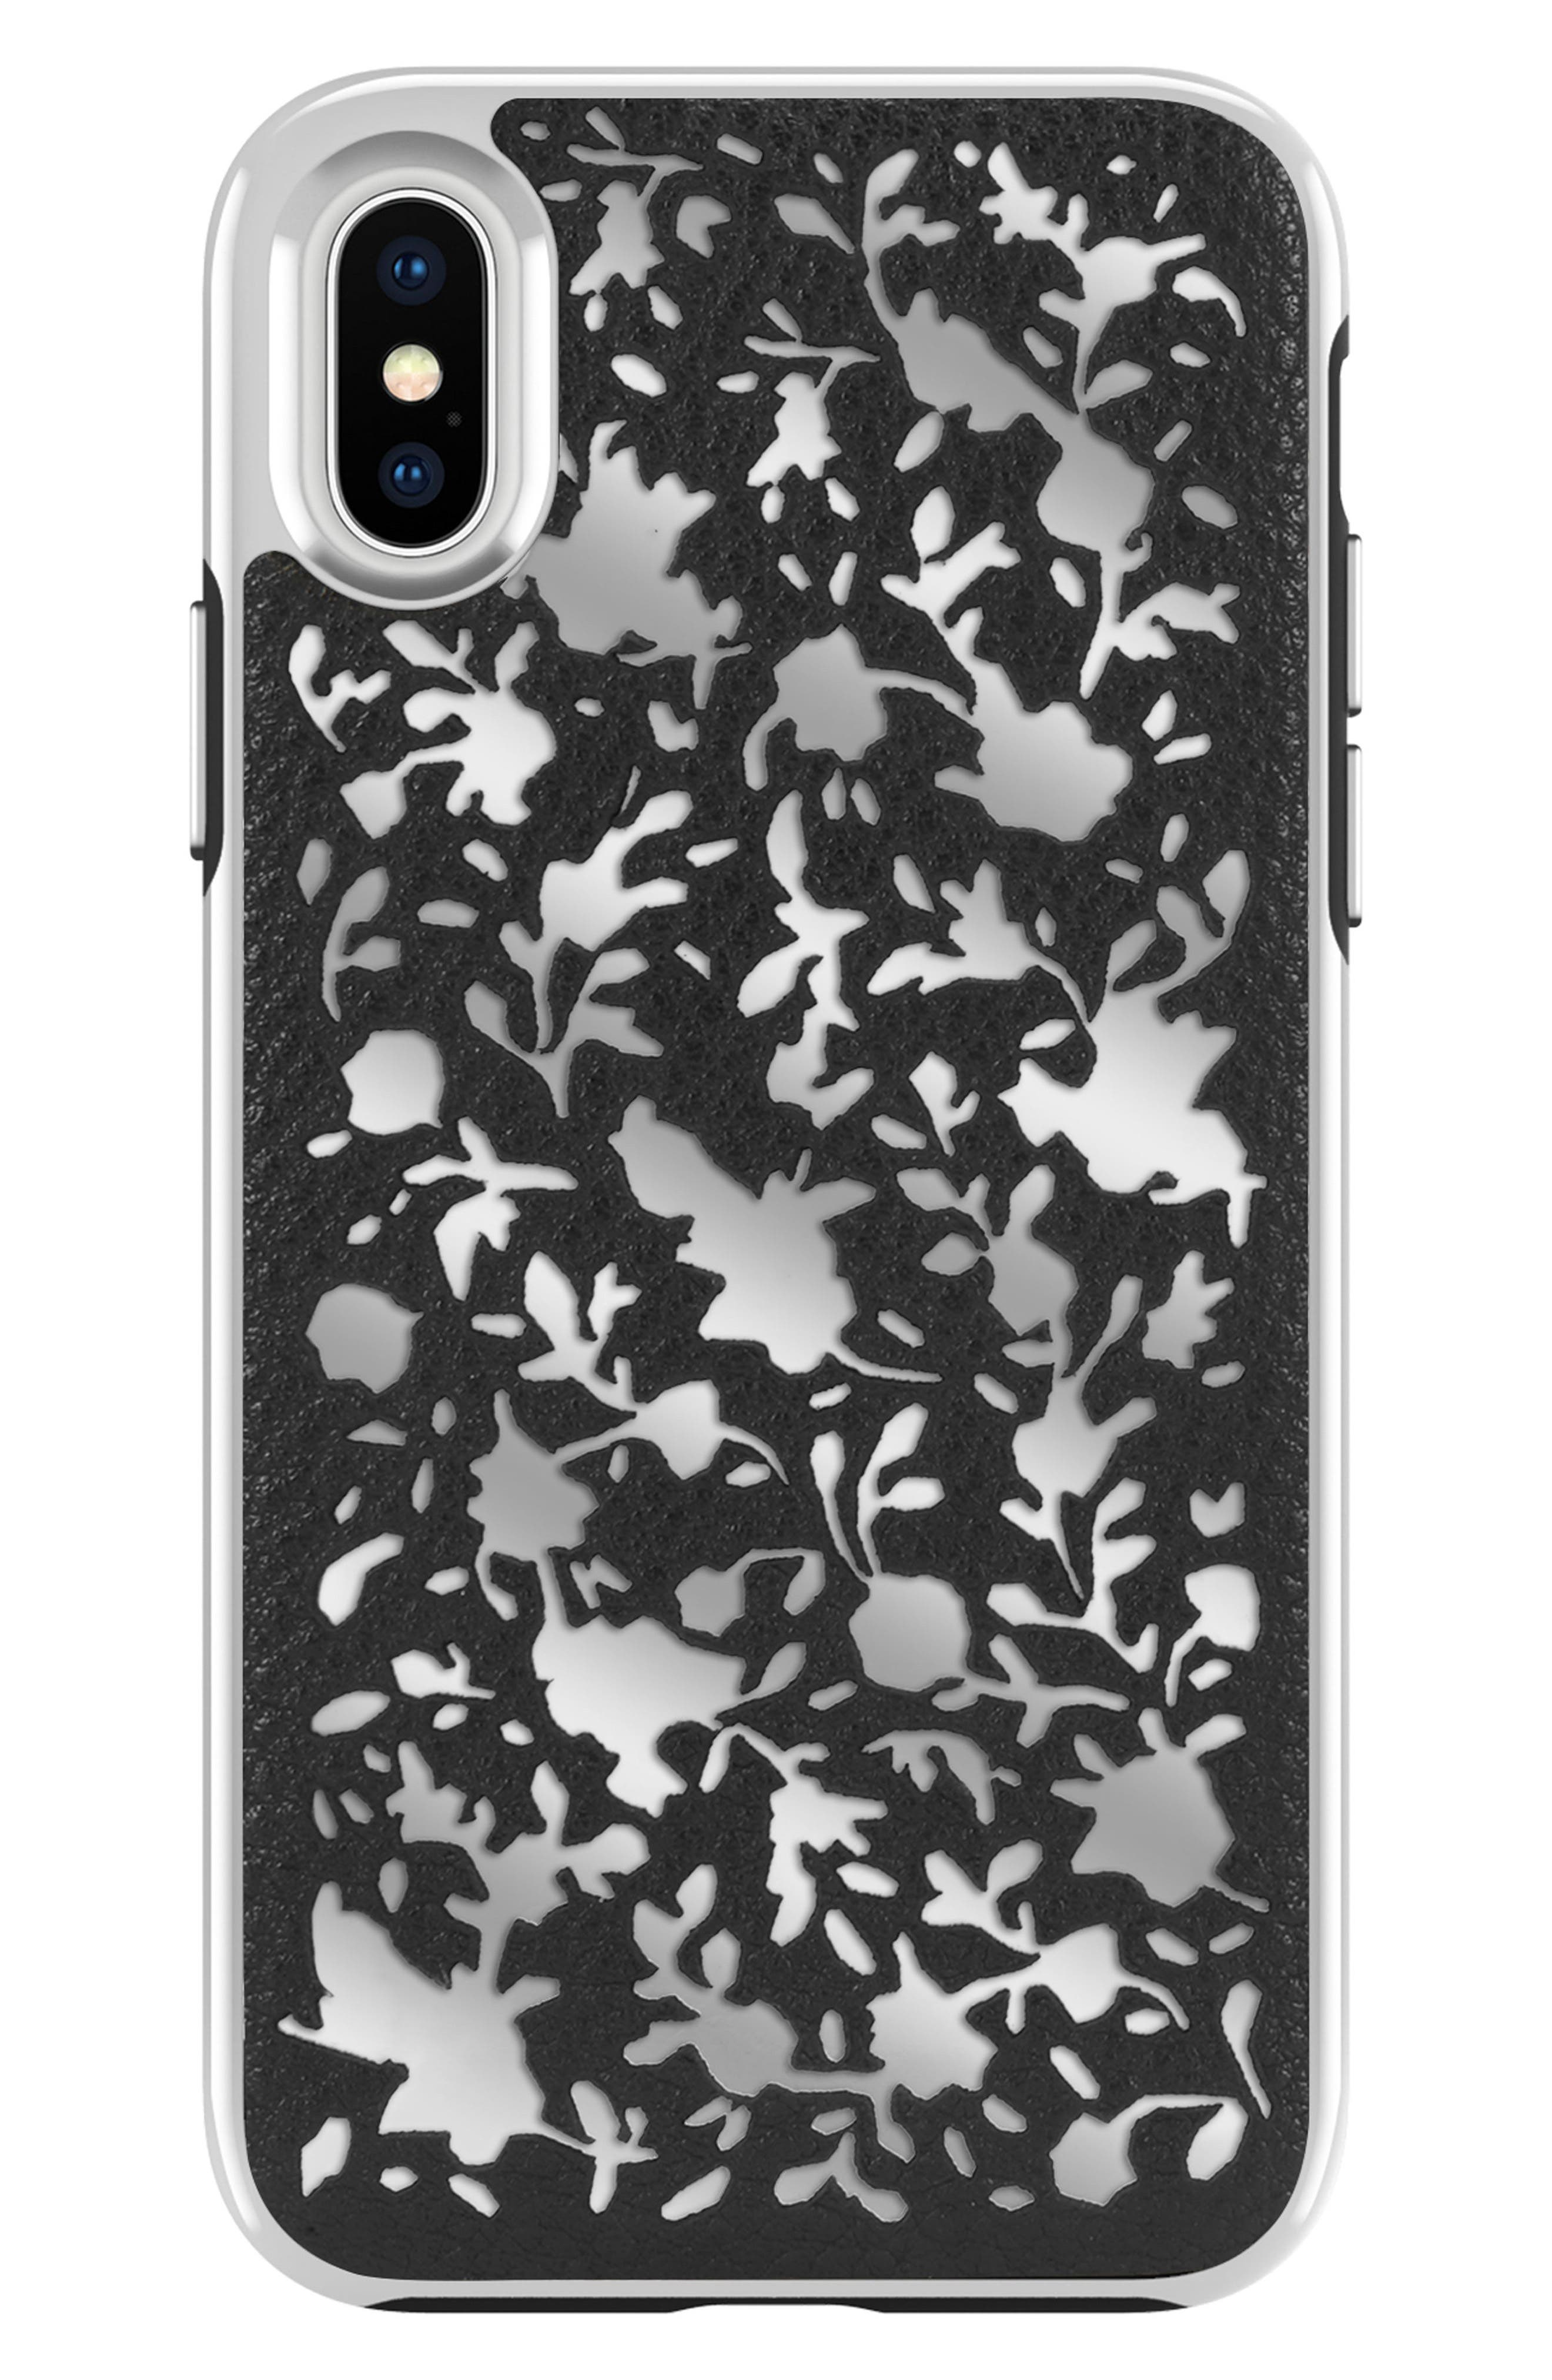 Luxury Calls Ditzy Floral iPhone X/Xs Case,                         Main,                         color, BLACK/ SILVER